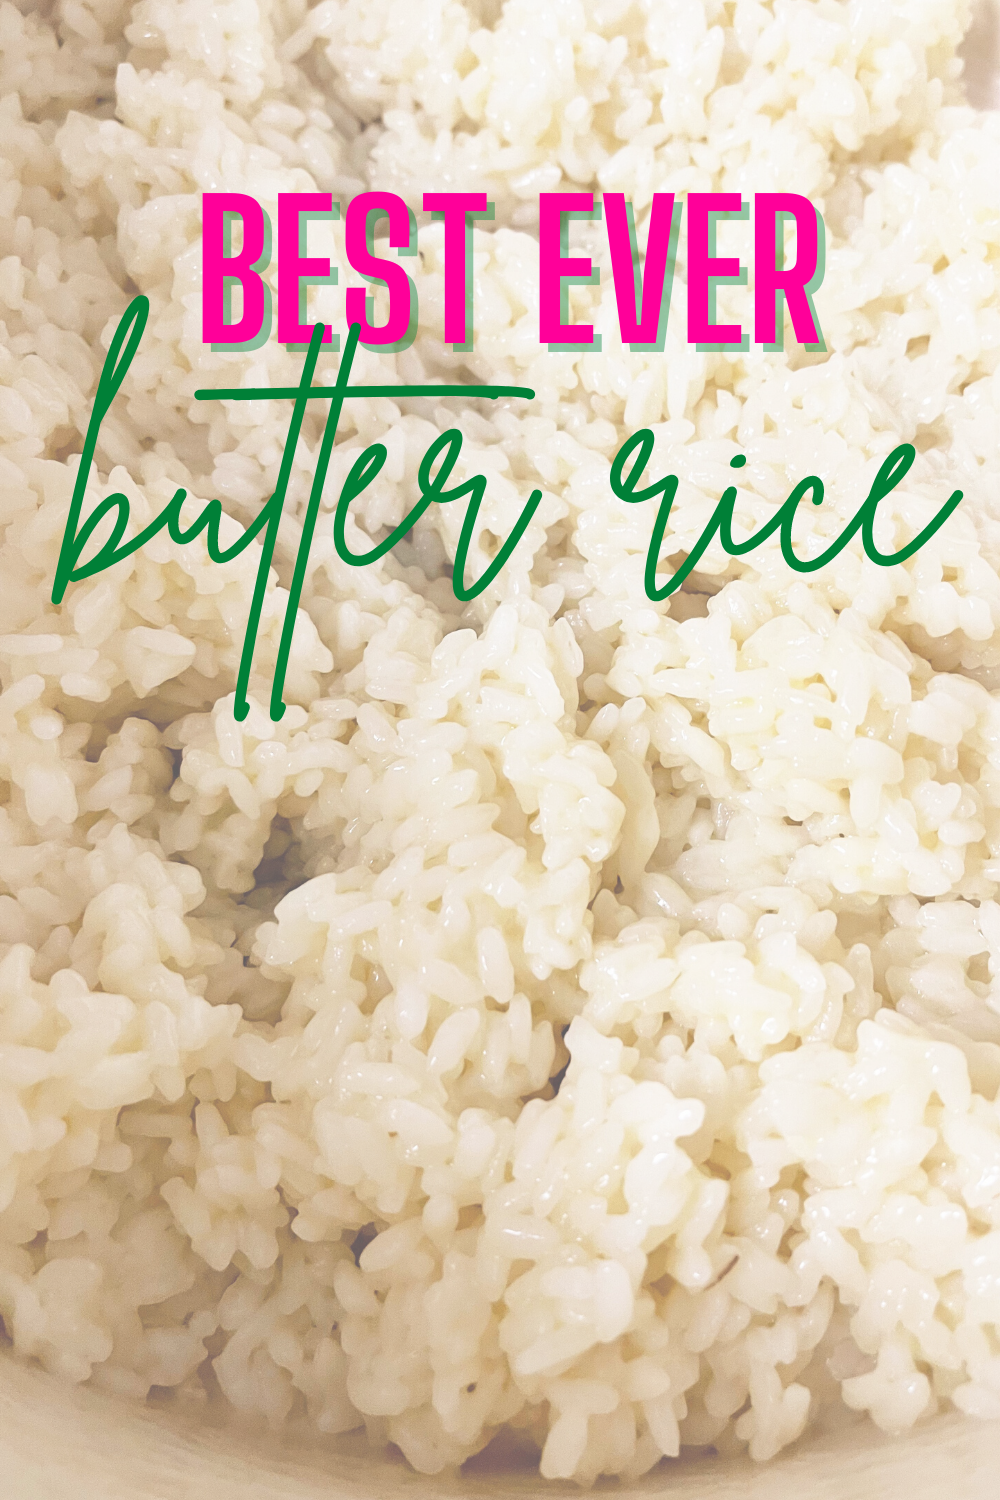 Creamy Butter Rice - Looking for a delicious rice recipe to accompany your next meal? I discovered this easy, creamy butter rice on TikTok!